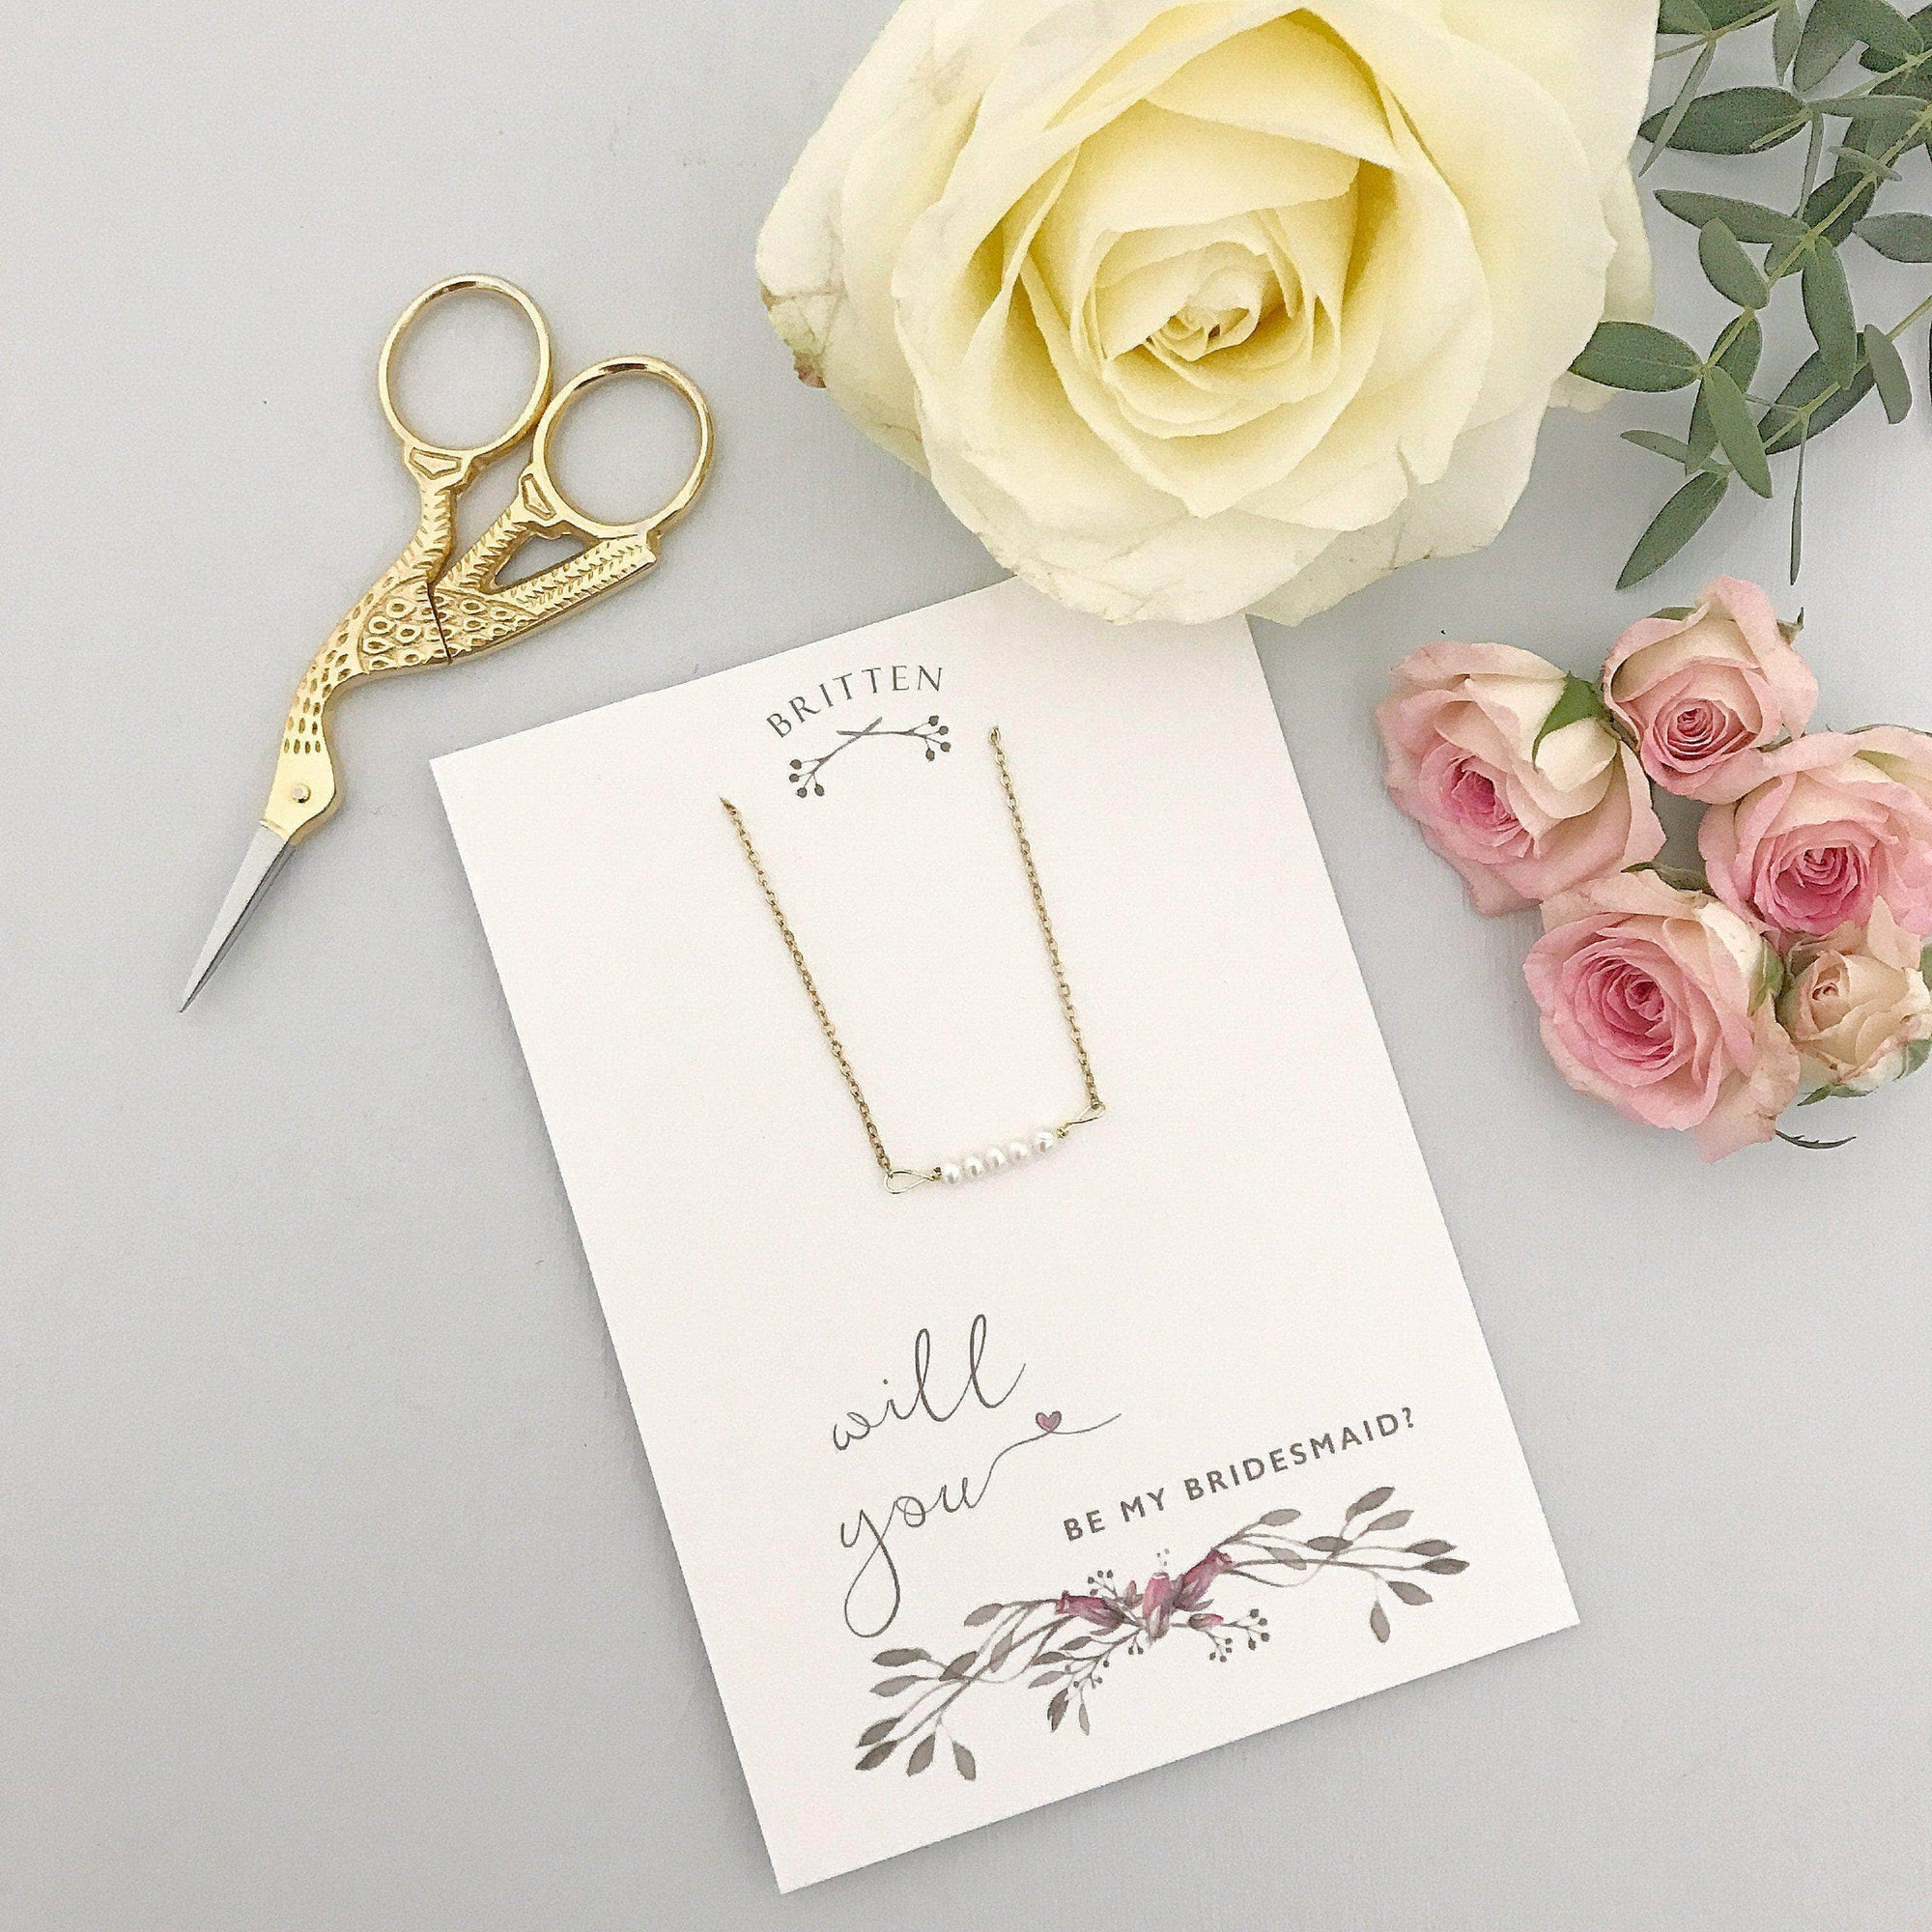 Bridesmaid Gift Gold Will you be my bridesmaid gift bracelet - 'Freya' in gold